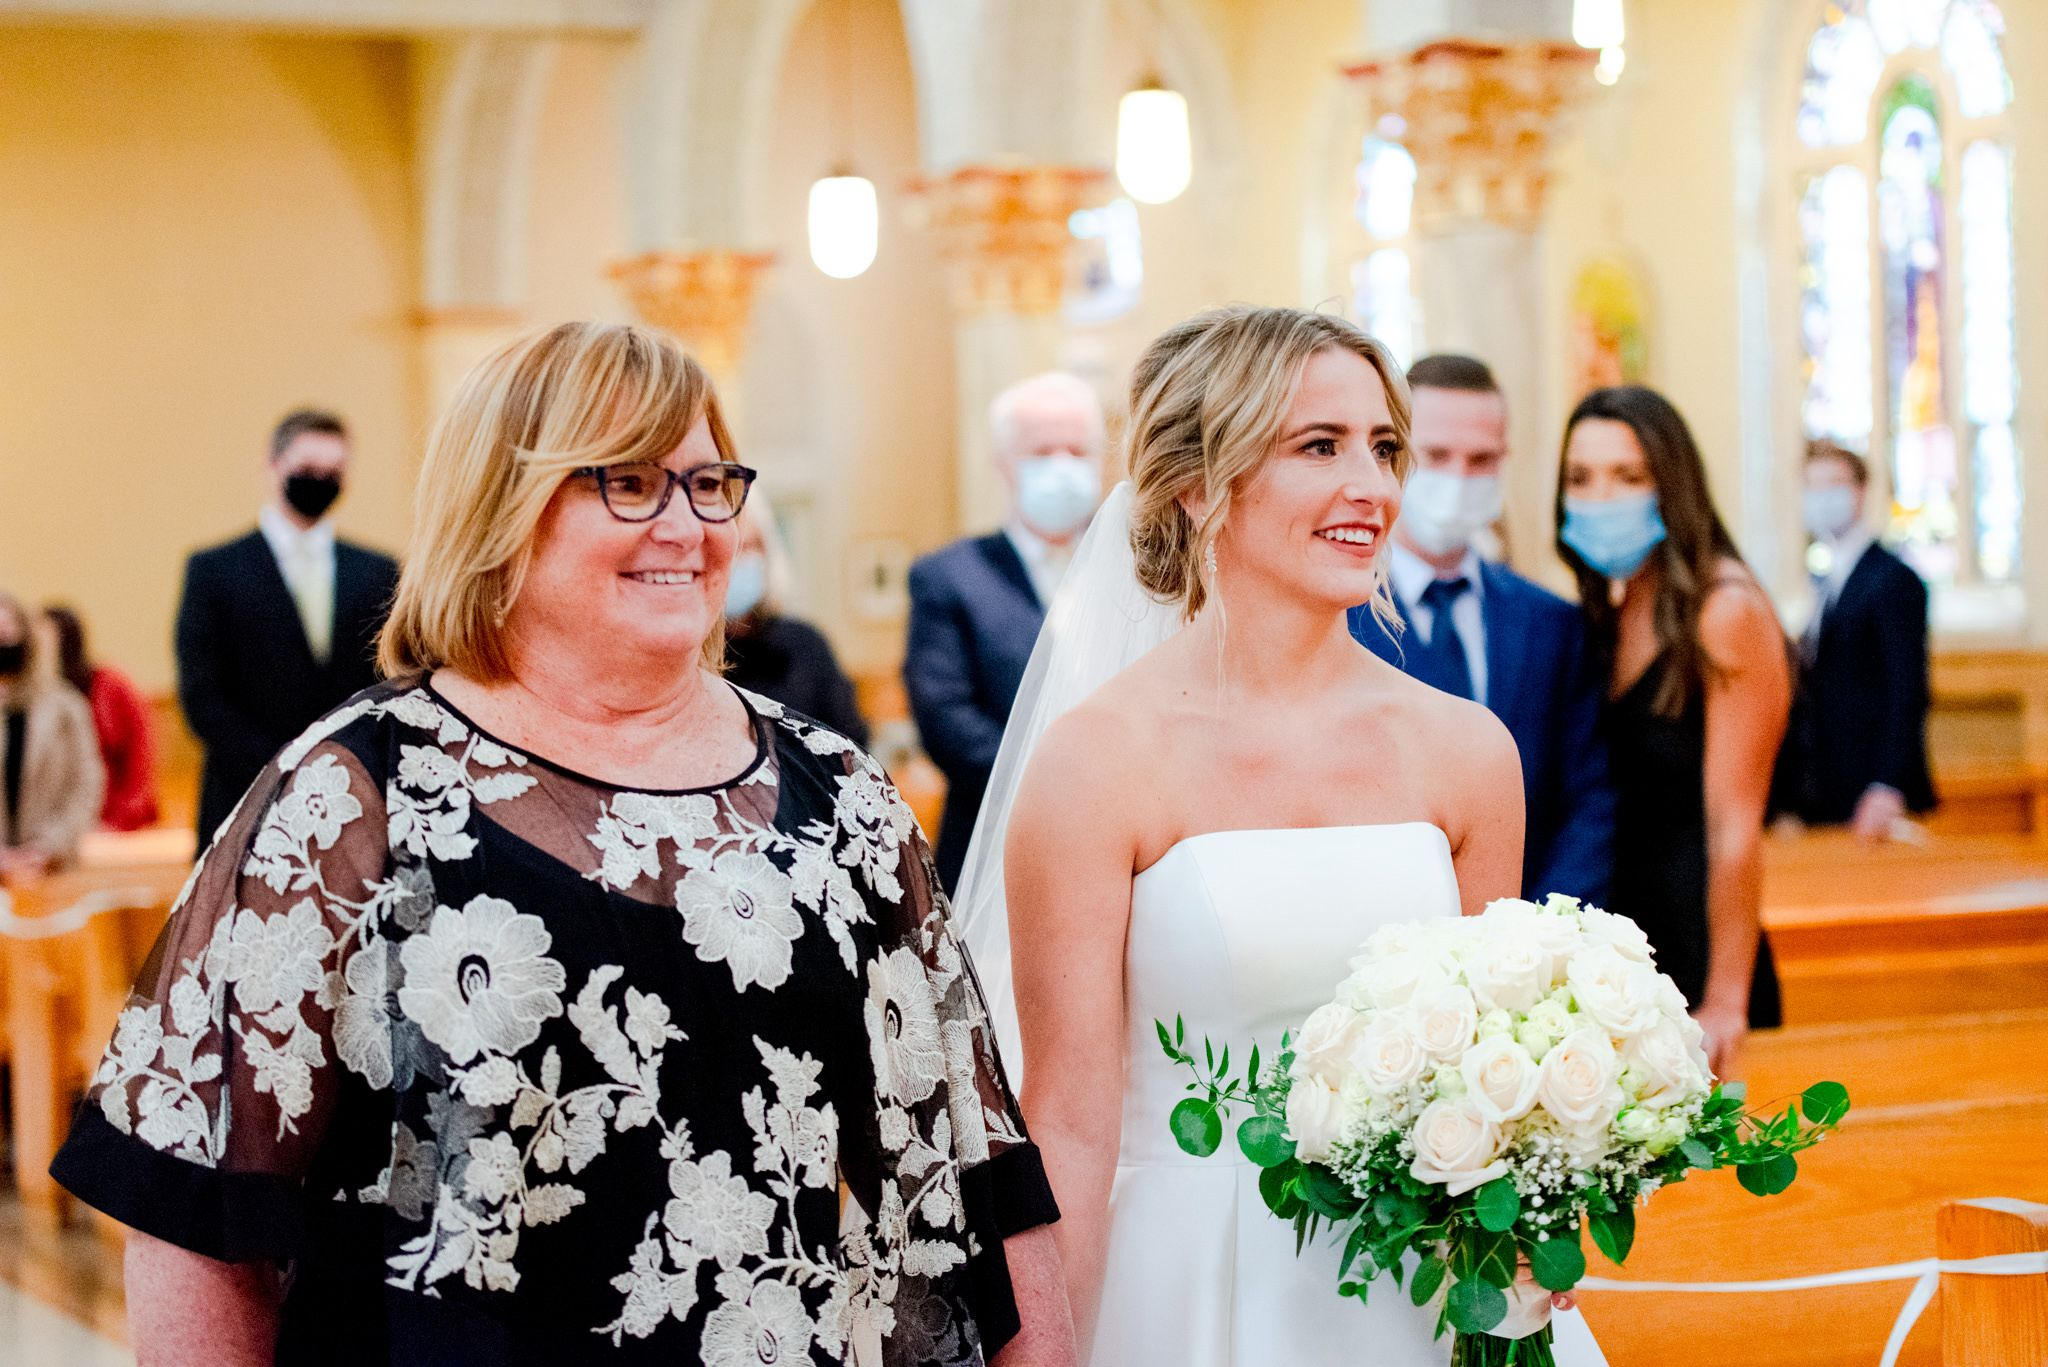 bride holding white bouquet and mother in glasses smiling as they walk down the aisle